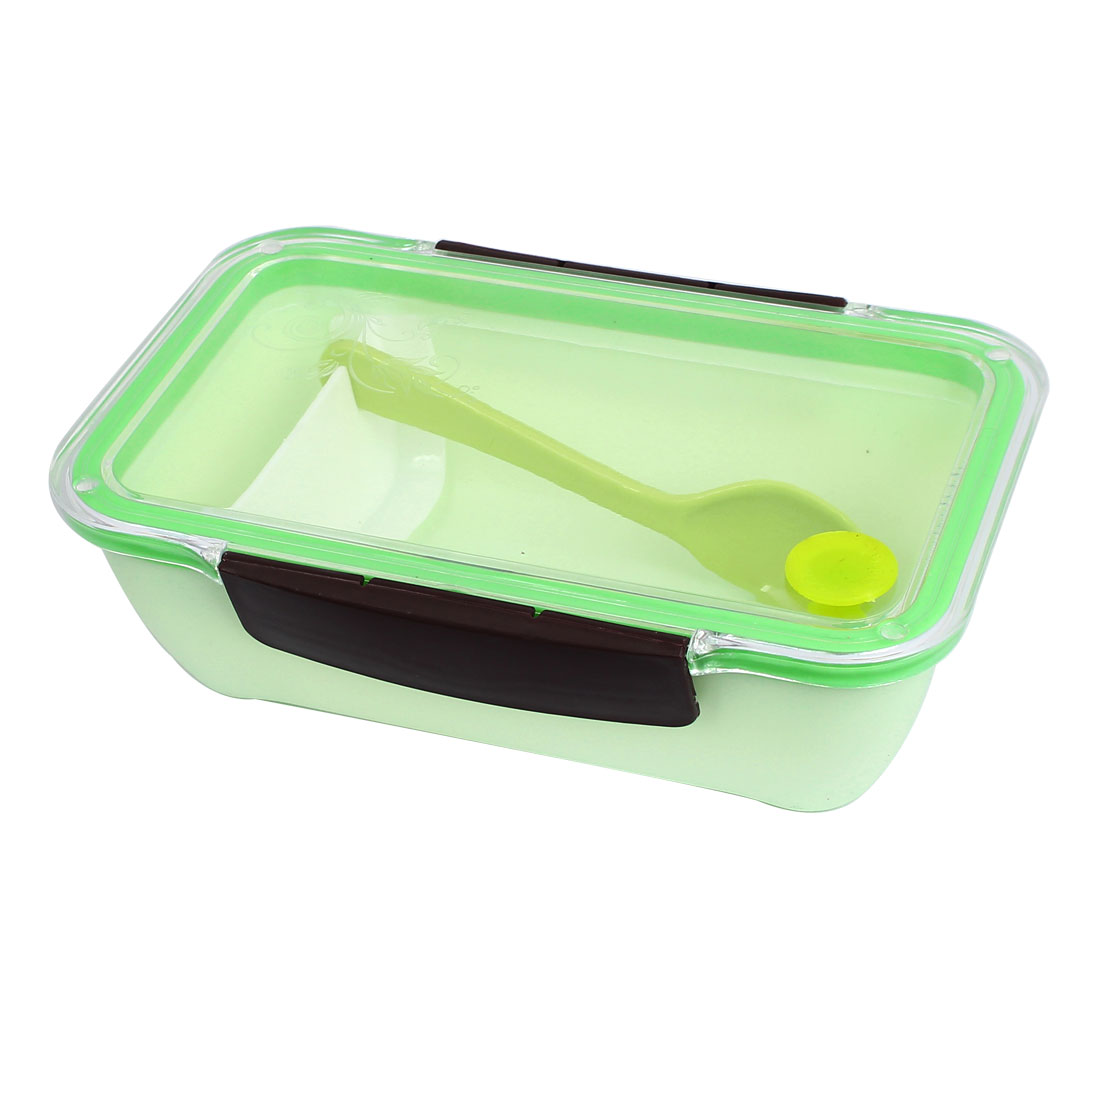 Picnic Plastic Rectangle Lunch Box Food Storage Container Light Green w Spoon